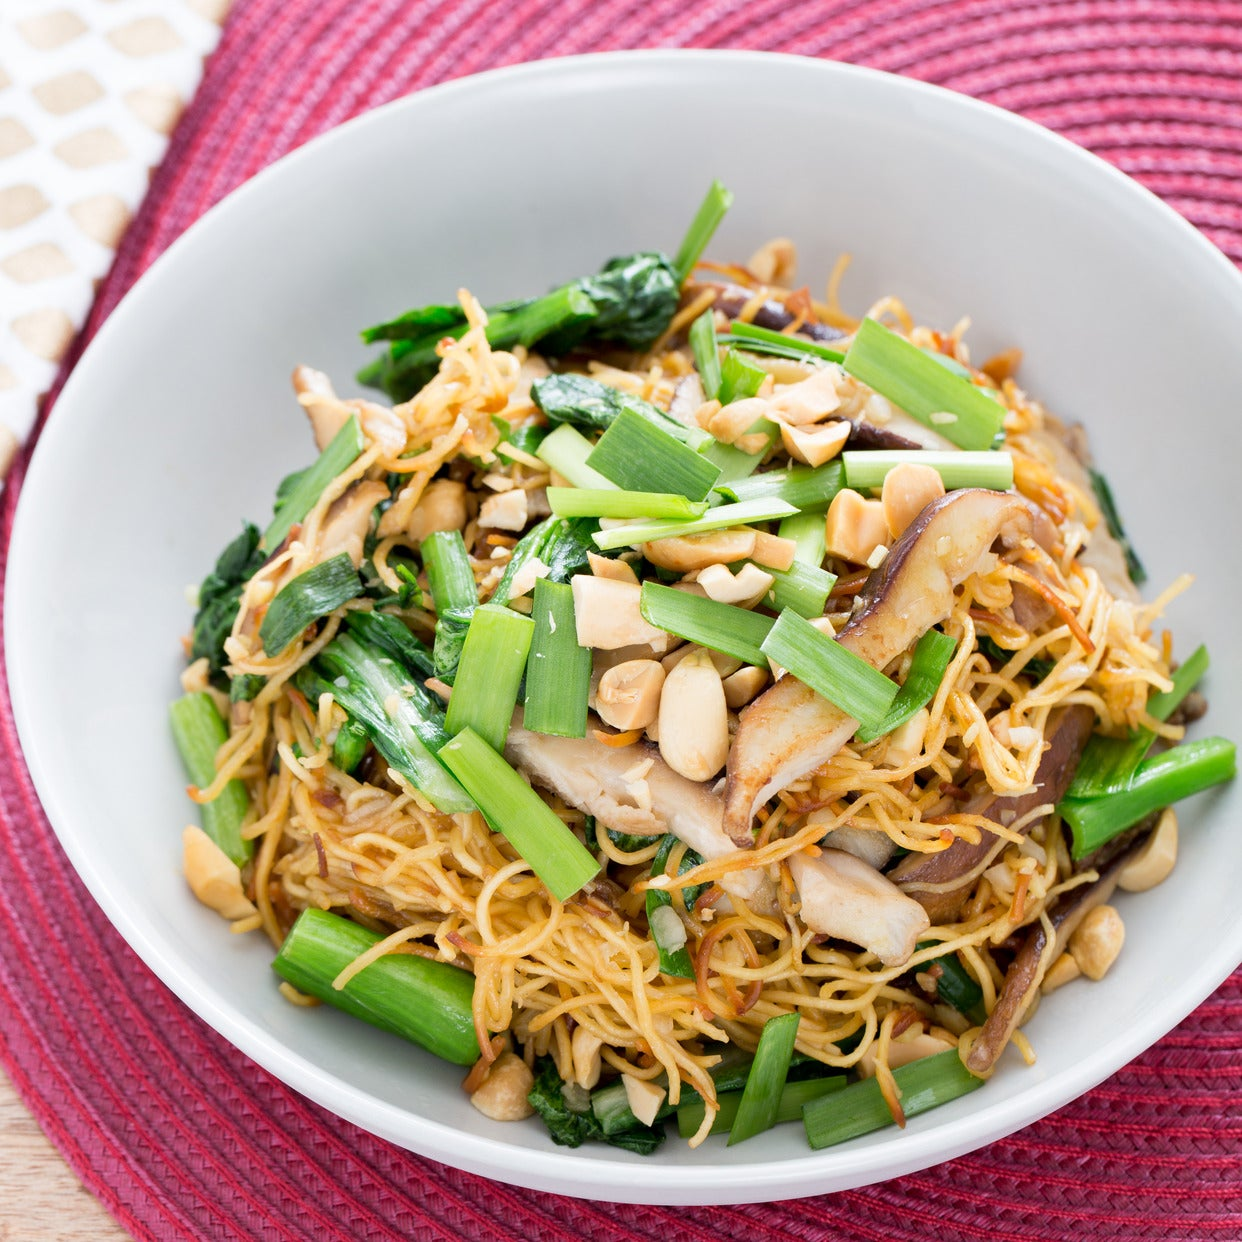 Recipe stir fried chow mein noodles with chinese broccoli chives stir fried chow mein noodles with chinese broccoli chives forumfinder Images